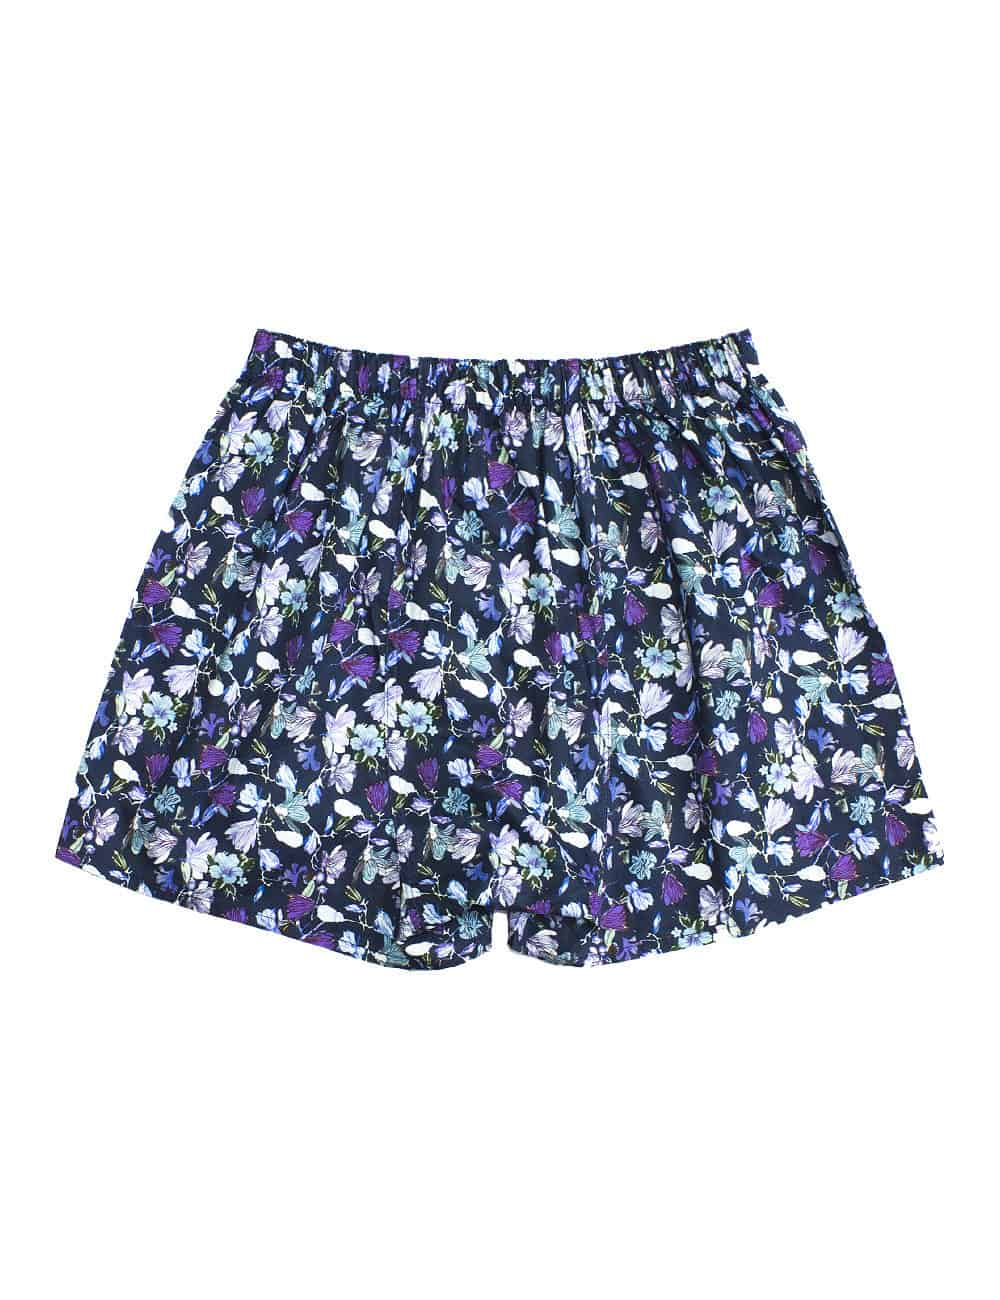 Singapore Botanic Gardens Inspired Navy Floral Print Button Fly Boxer Shorts with Silky Finish IW1A5.1